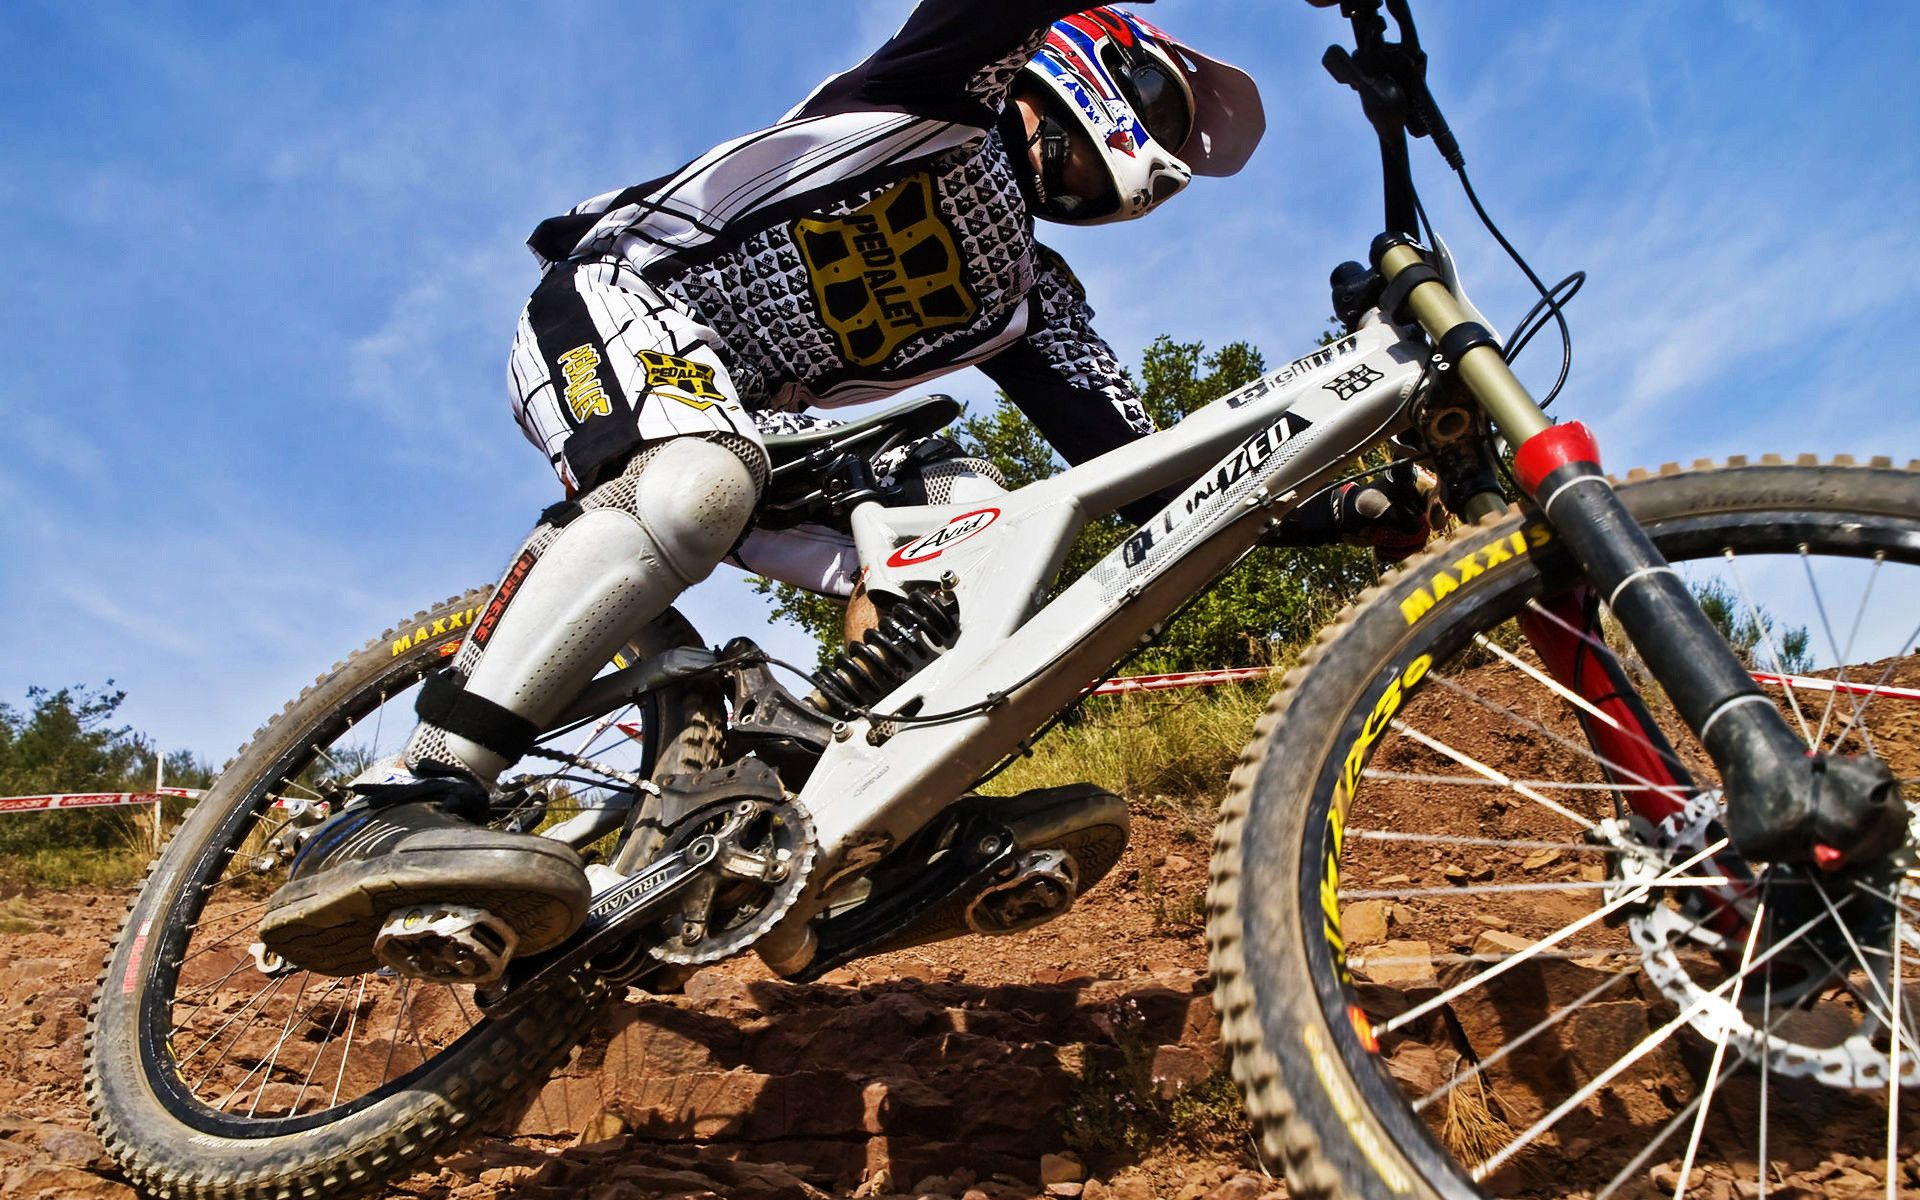 1920x1200 1920x1200 In 2019 Bicycle Bicycle Race Downhill Bike